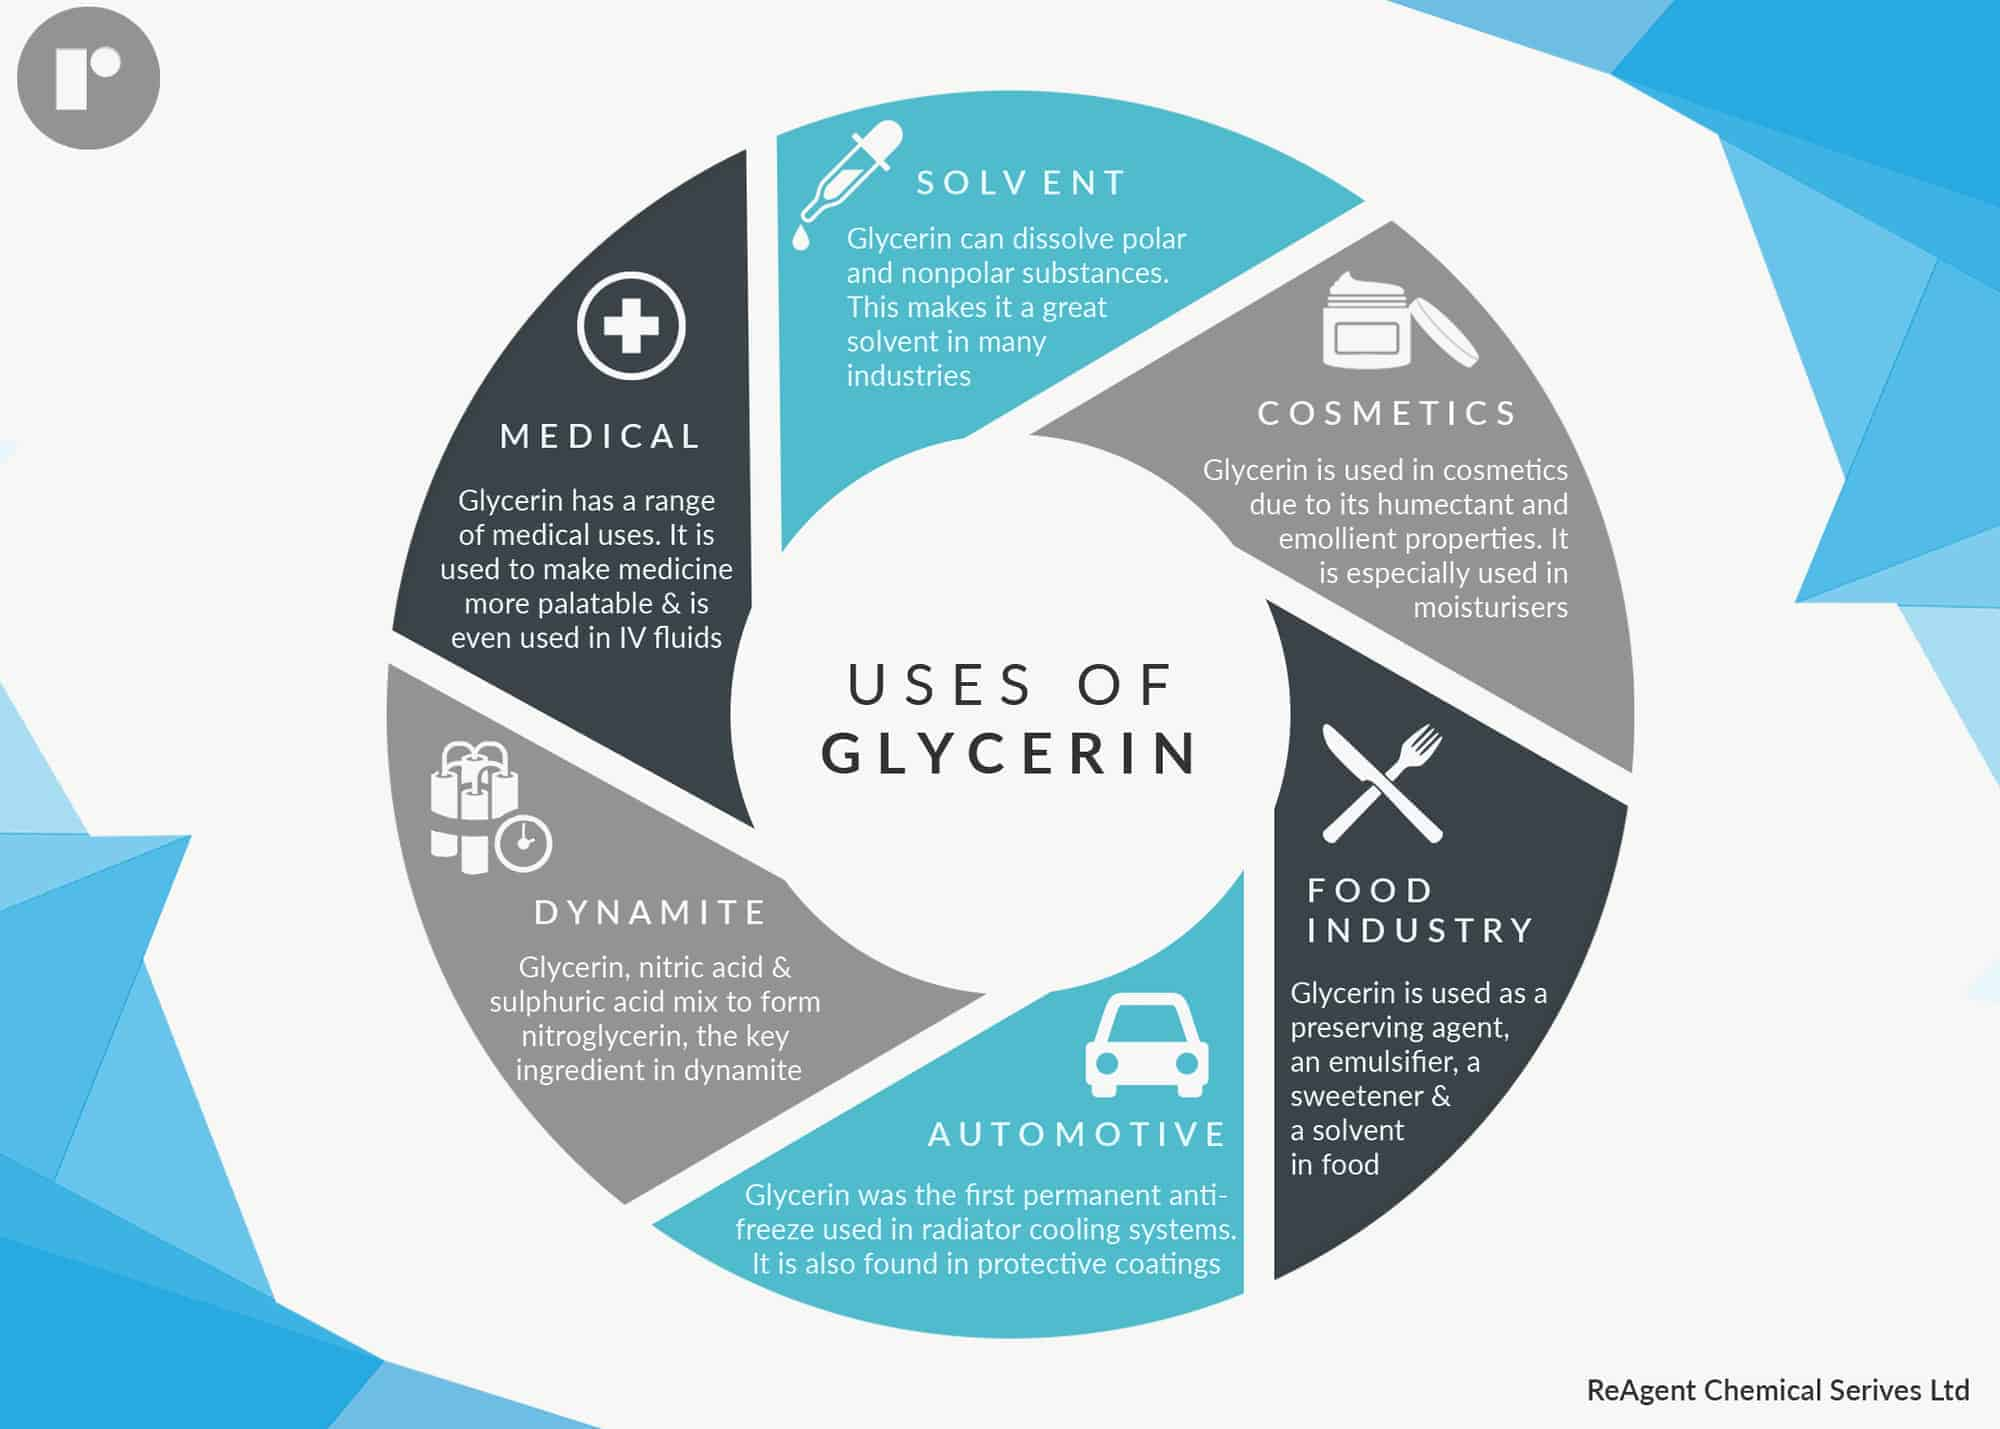 An infographic detailing 6 uses of glycerin